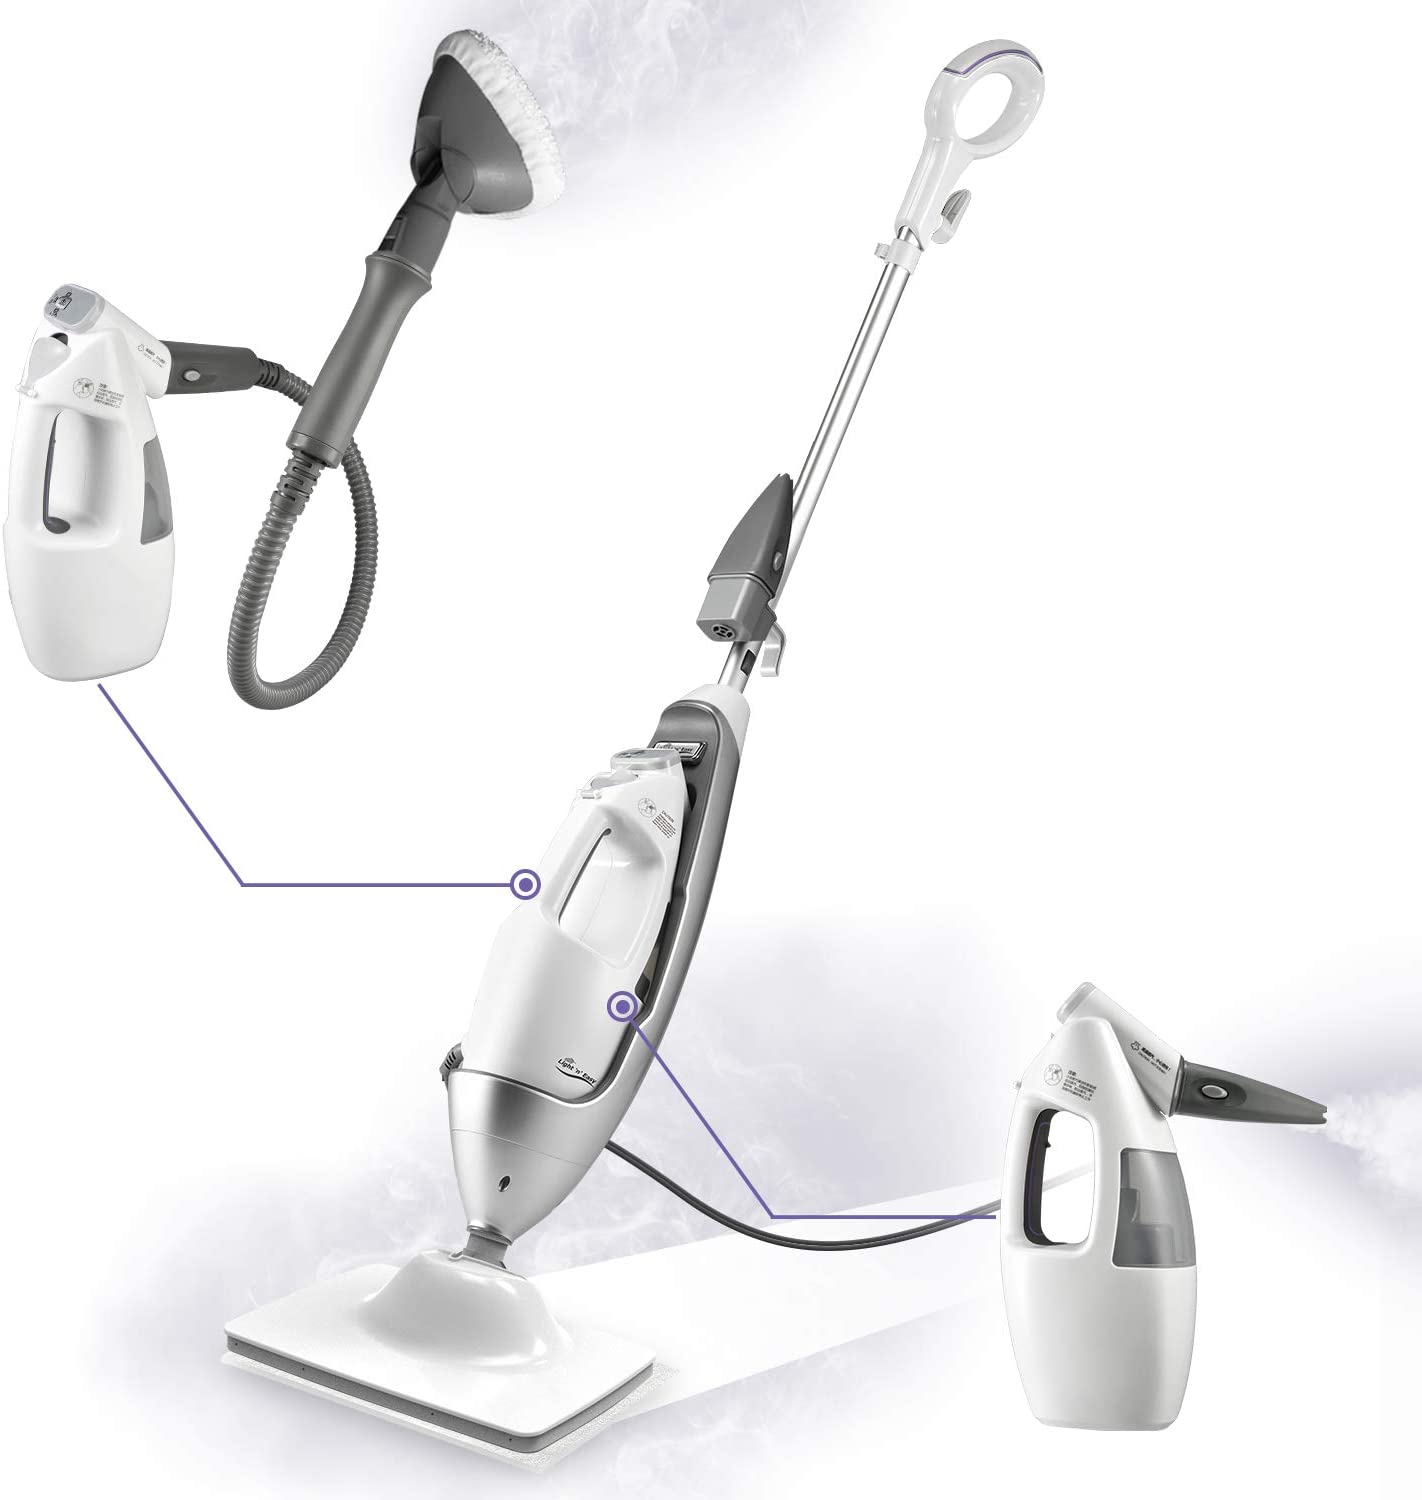 LIGHT AND EASY Multifunctional Steam Mop with Detachable Handheld Unit Floor Steamers Cleaner for Hardwood,Grout